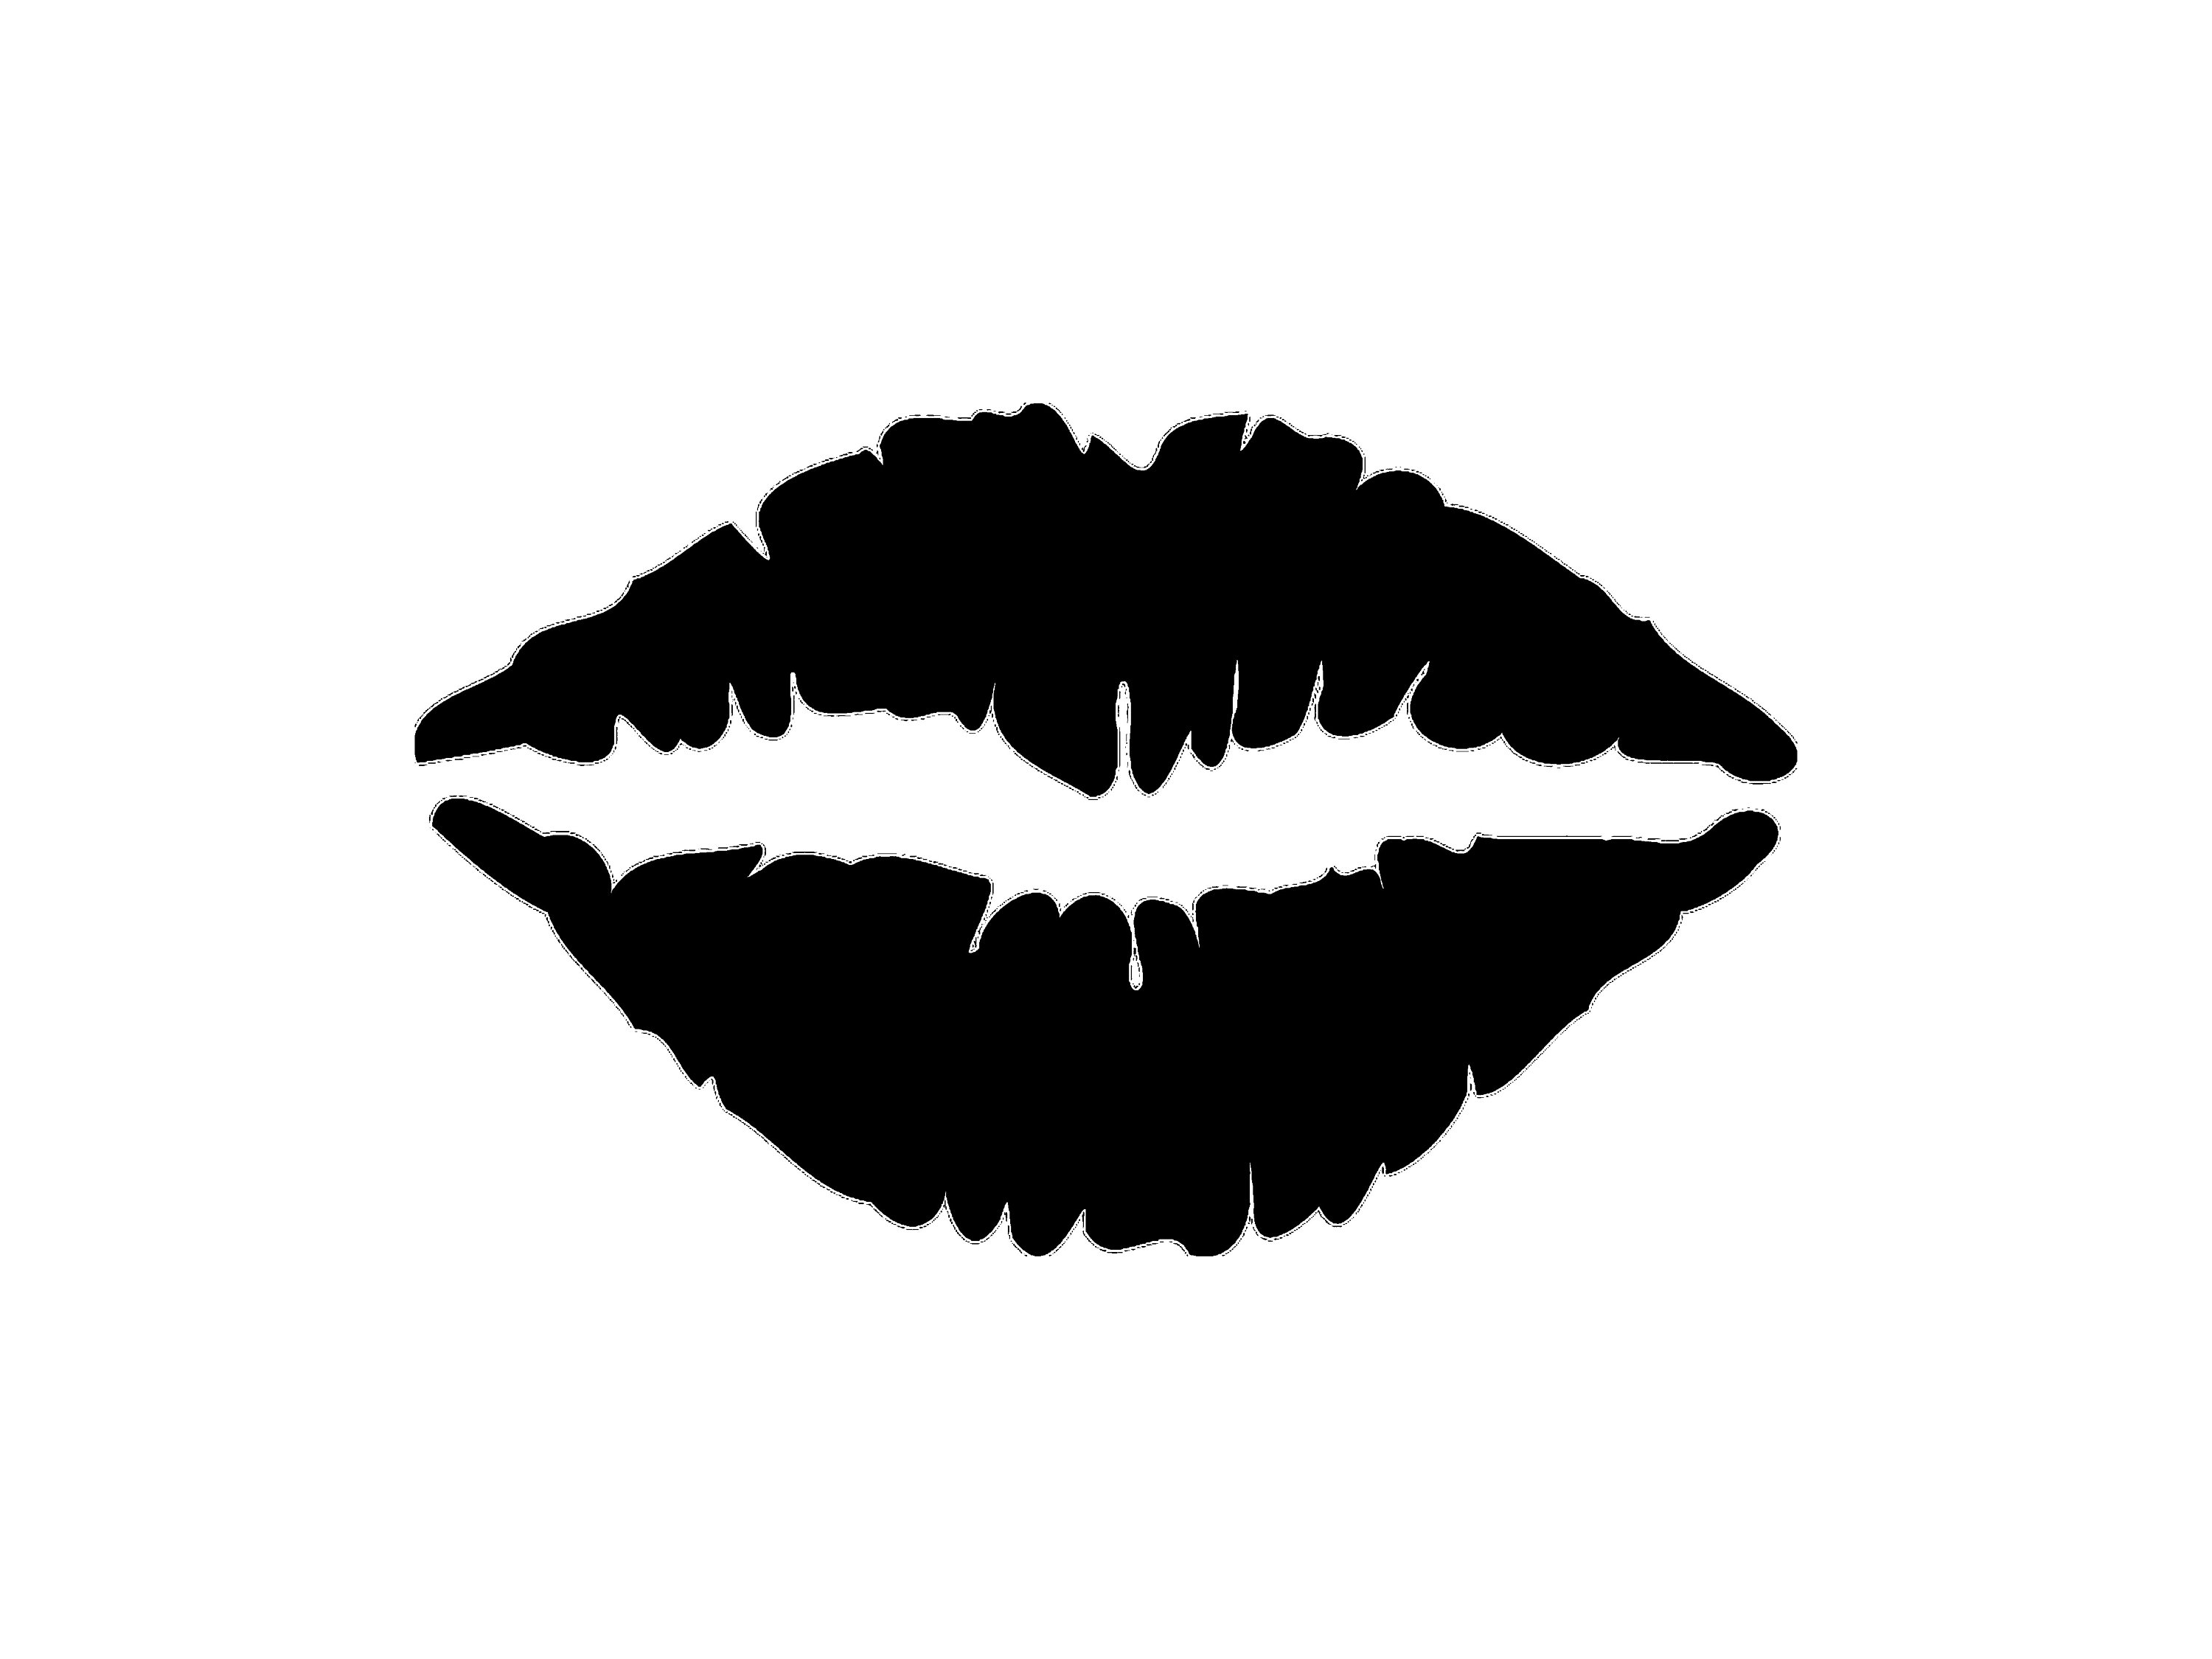 Lips Silhouette Png, png collections at sccpre.cat.